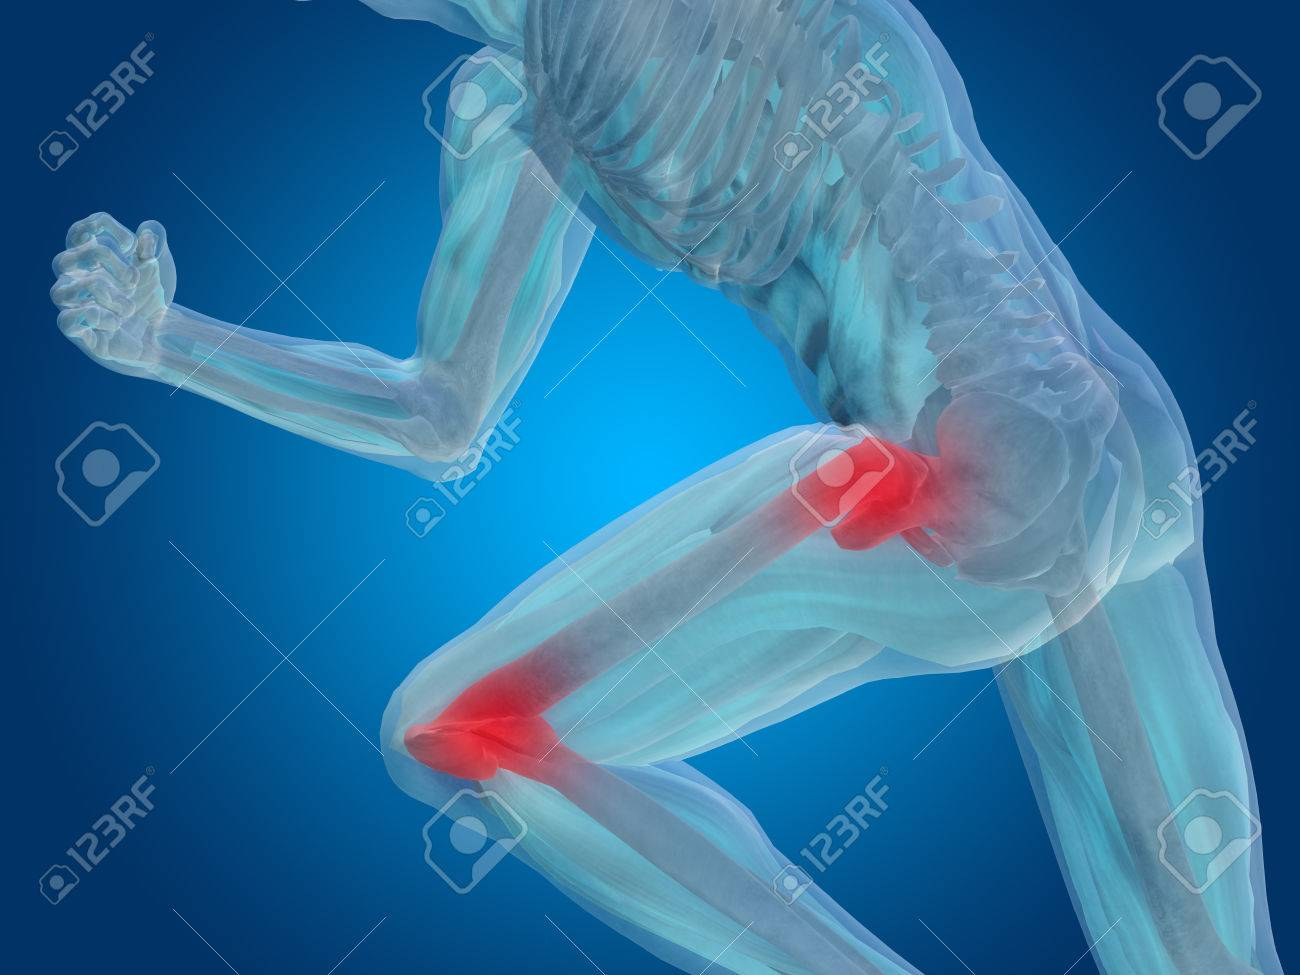 Conceptual human body anatomy articular pain on blue background - 35623085